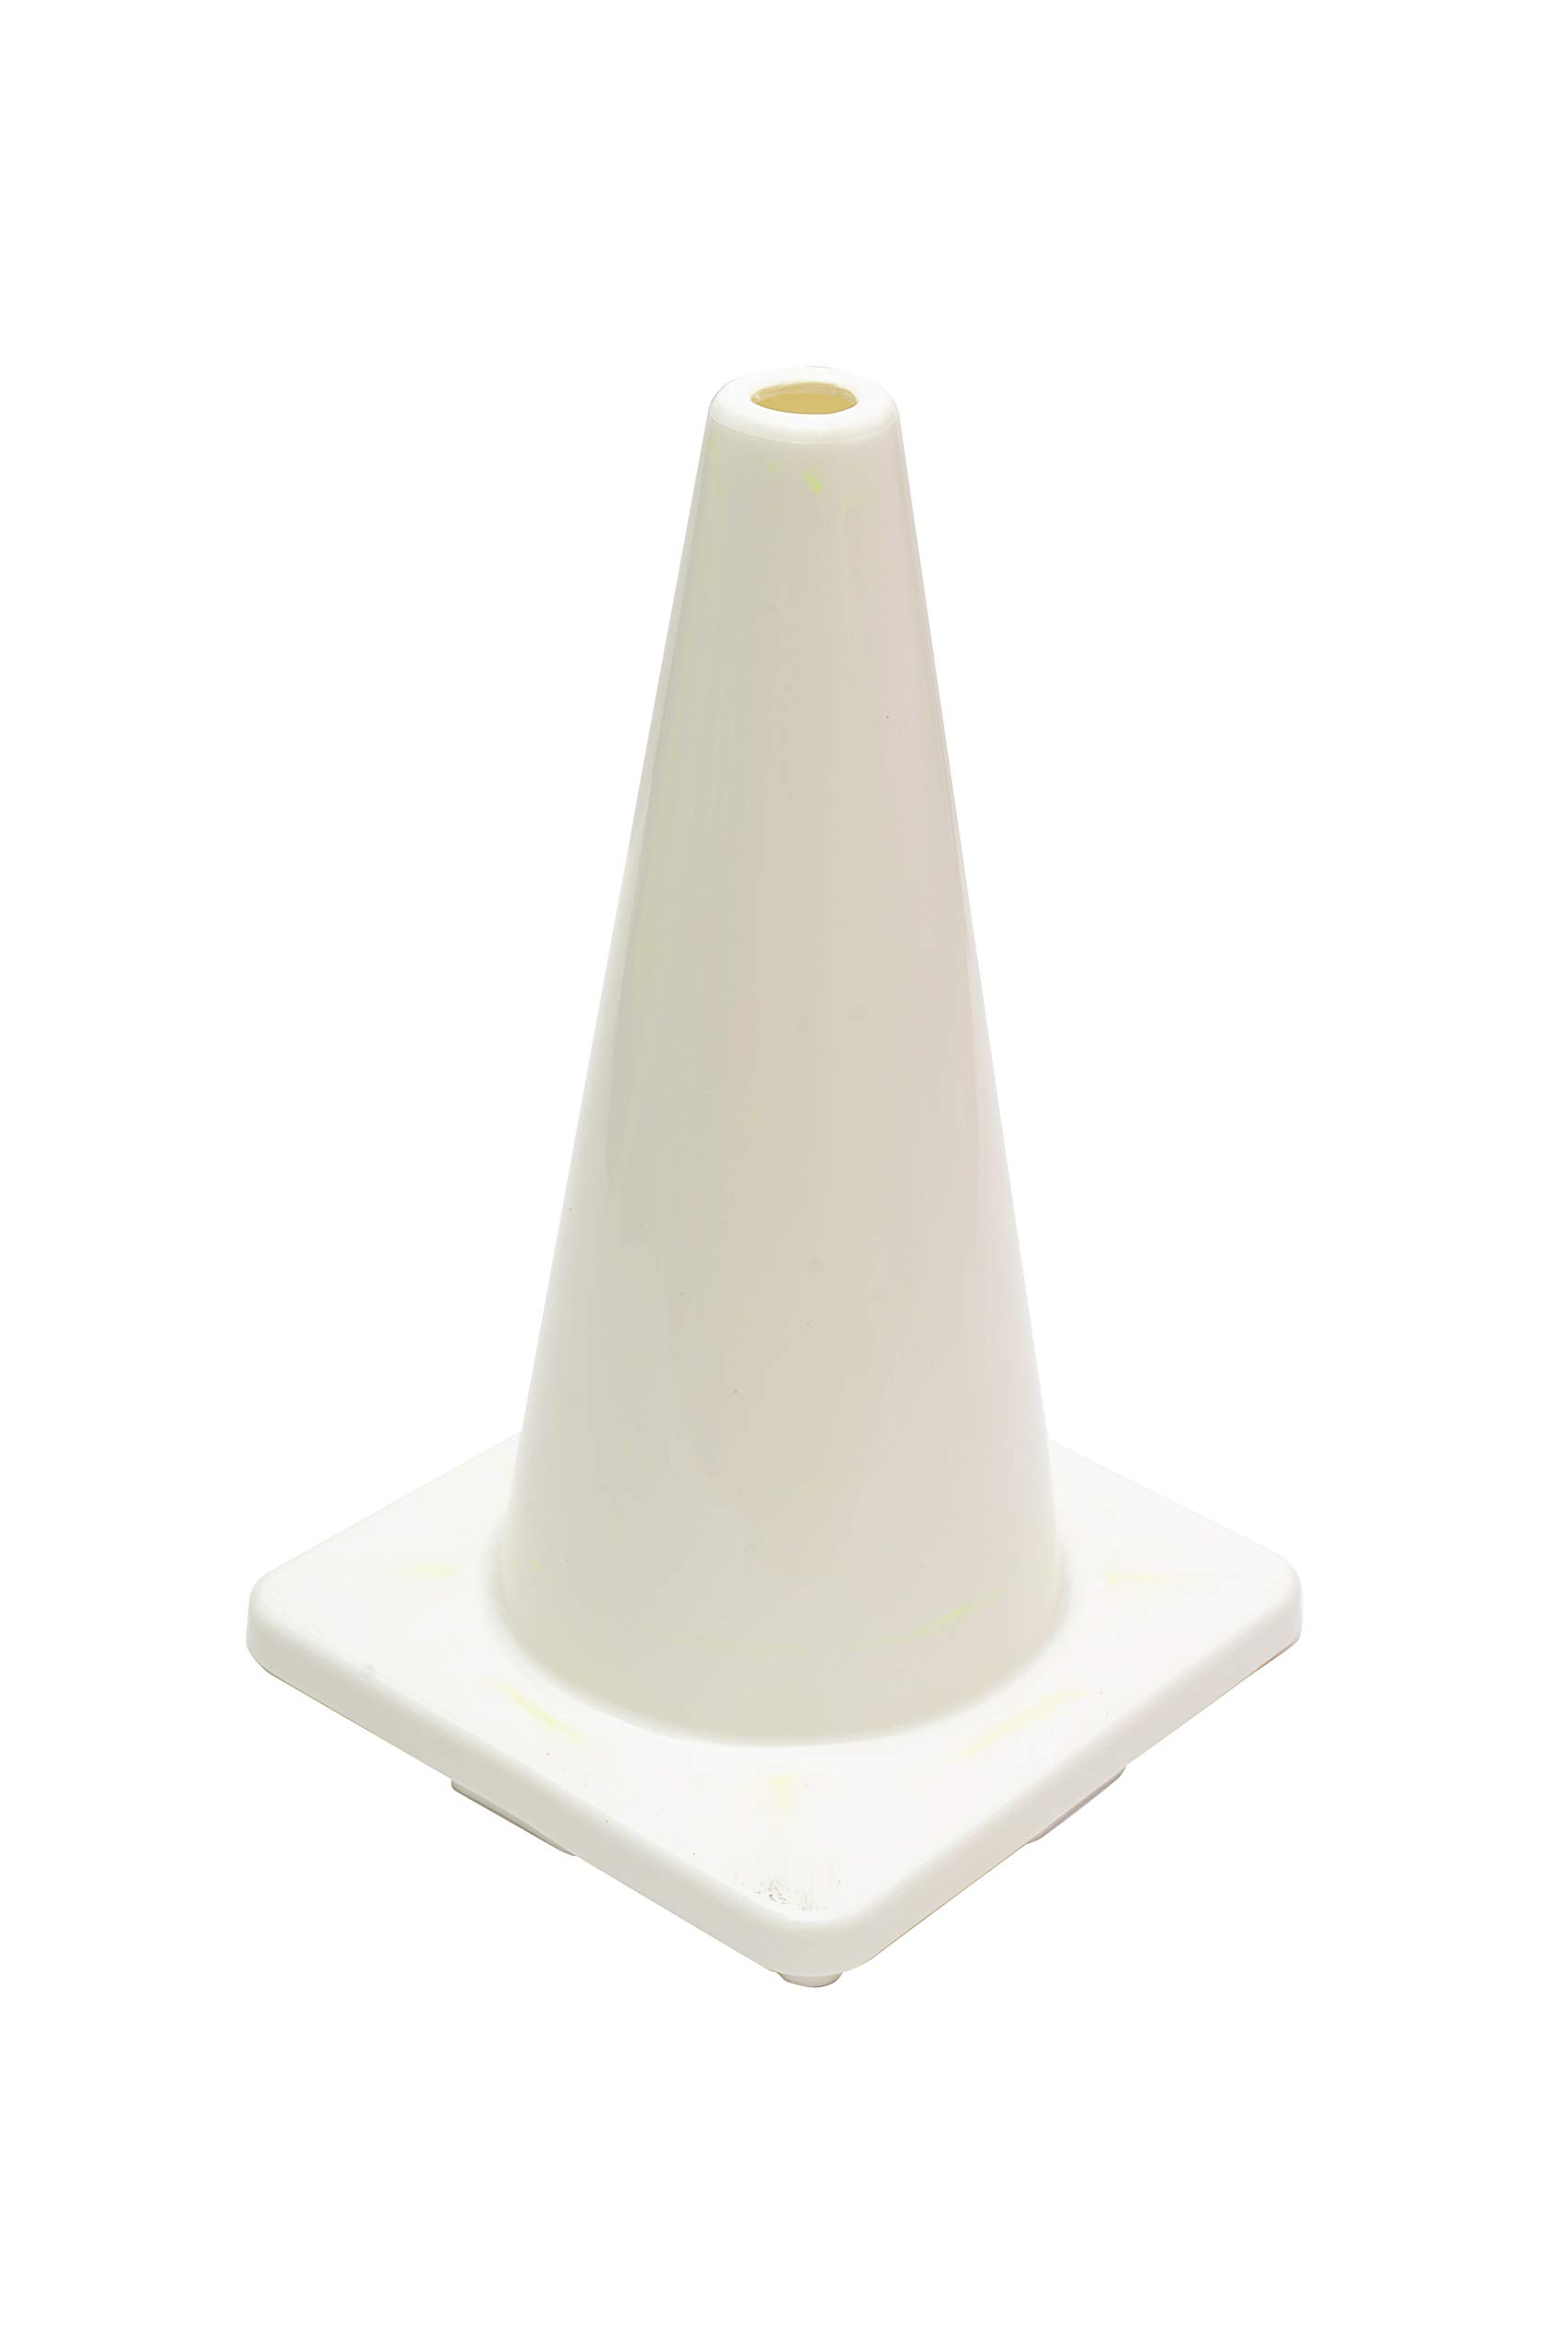 (Set of 12) CJ Safety 18'' White PVC Traffic Safety Cones - No Reflective Collar (12 Cones)